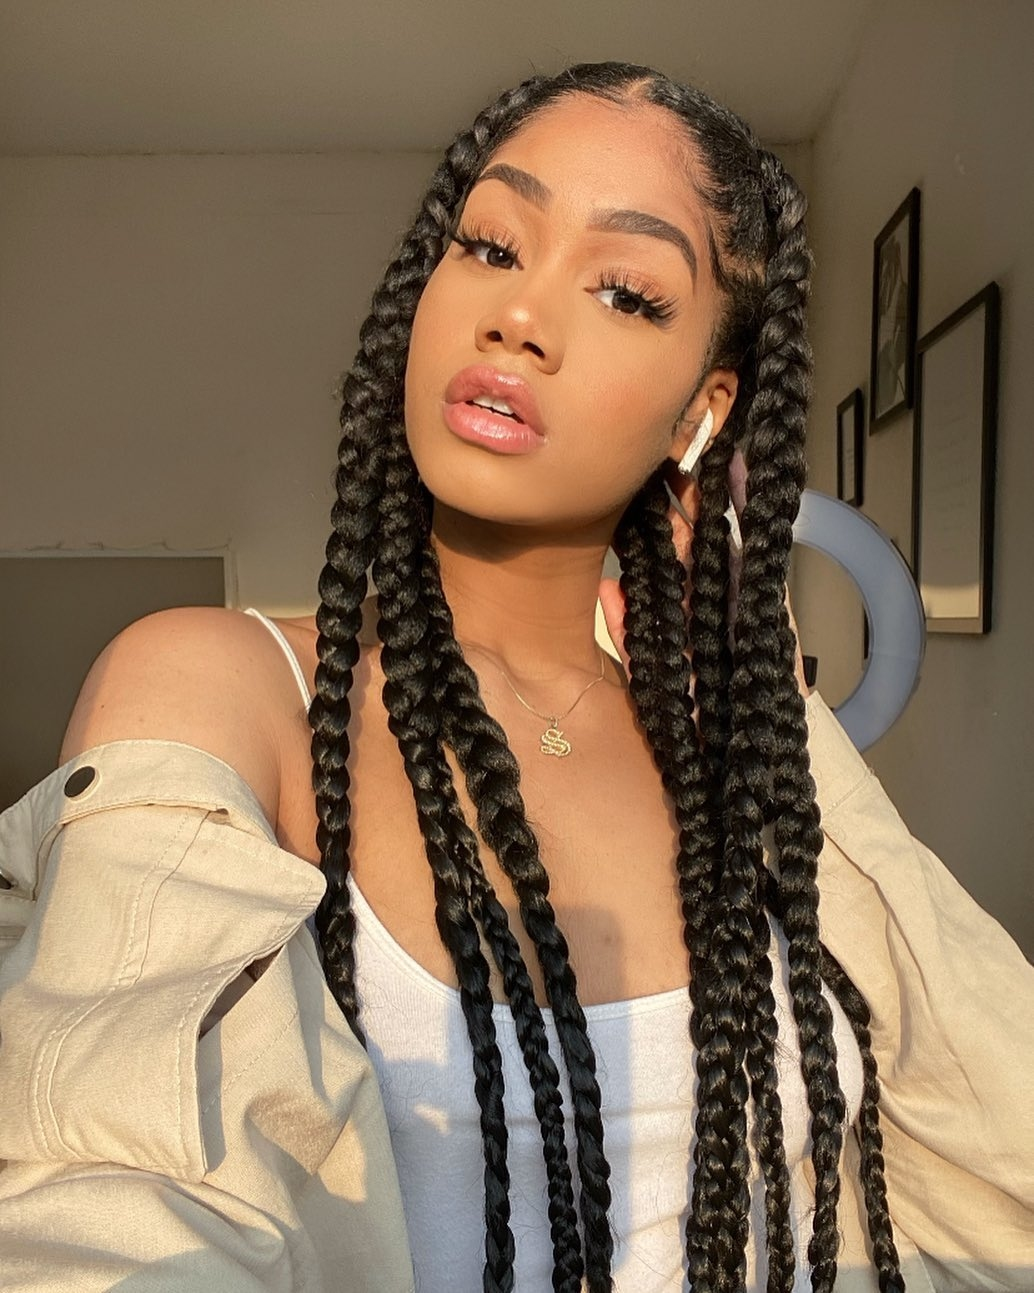 The Jumbo Knotless Braid Leads The Braided Hairstyles Trending Rn